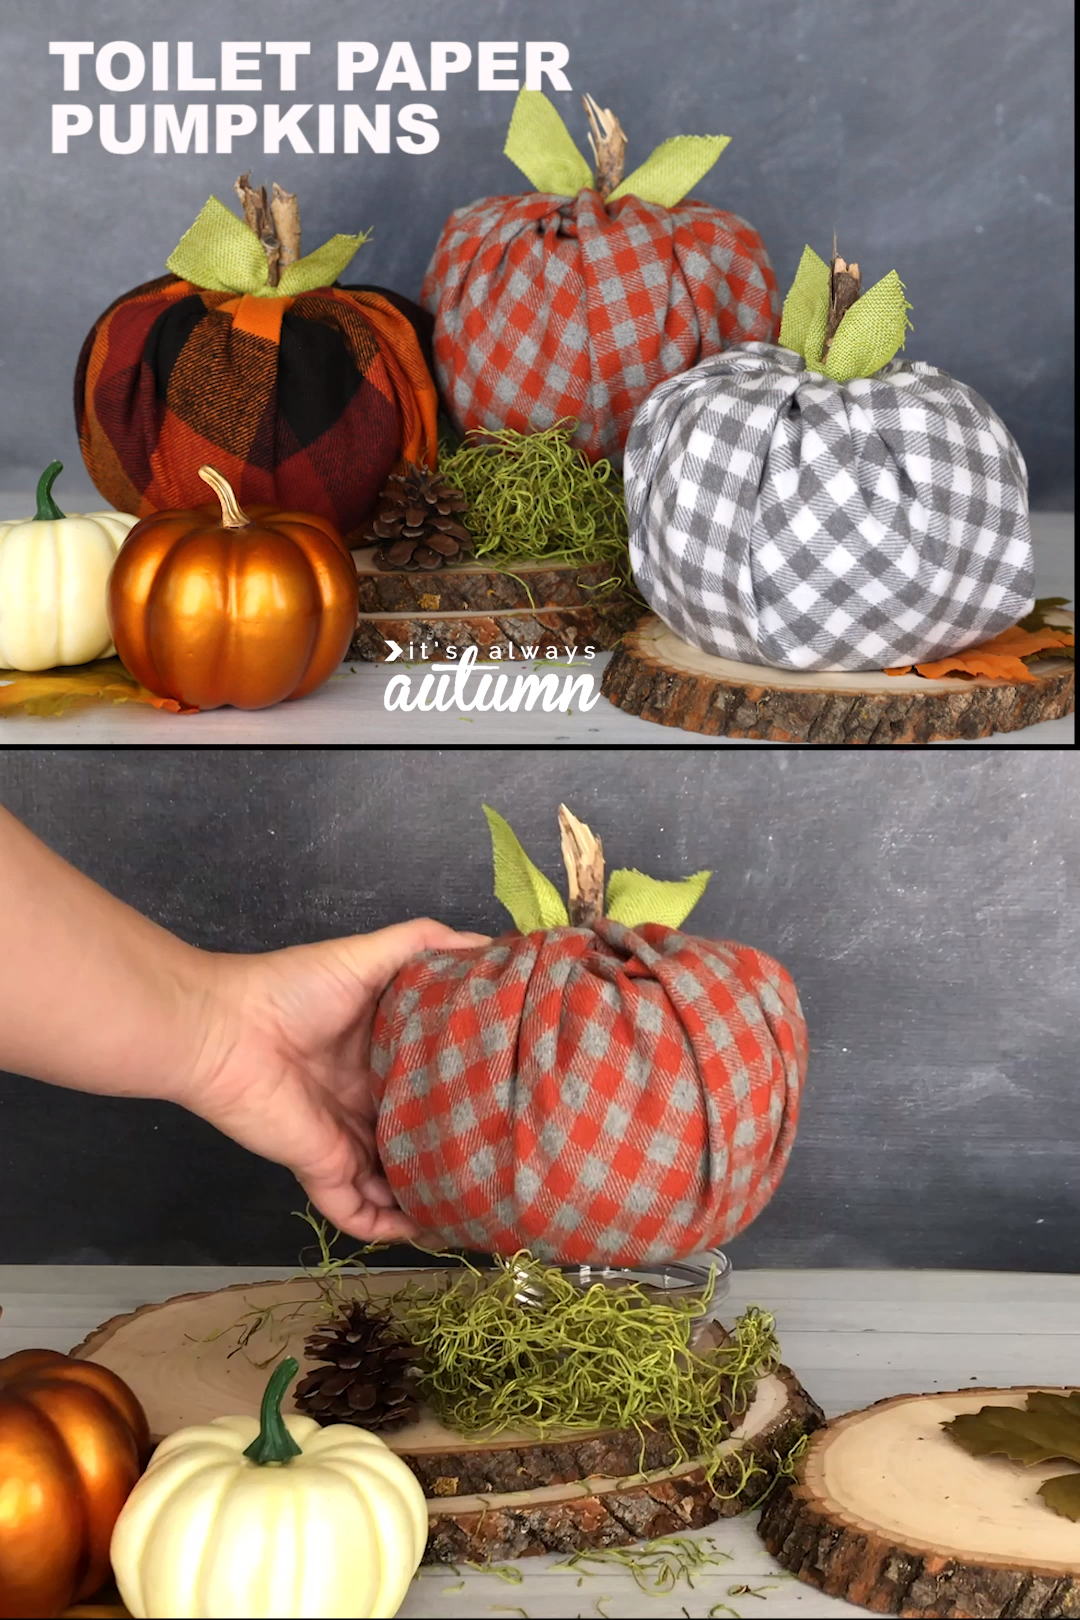 This is such a cute fall decoration! Wrap toilet paper rolls in adorable plaid flannel to make cute little pumpkins. It's a super easy fall craft.